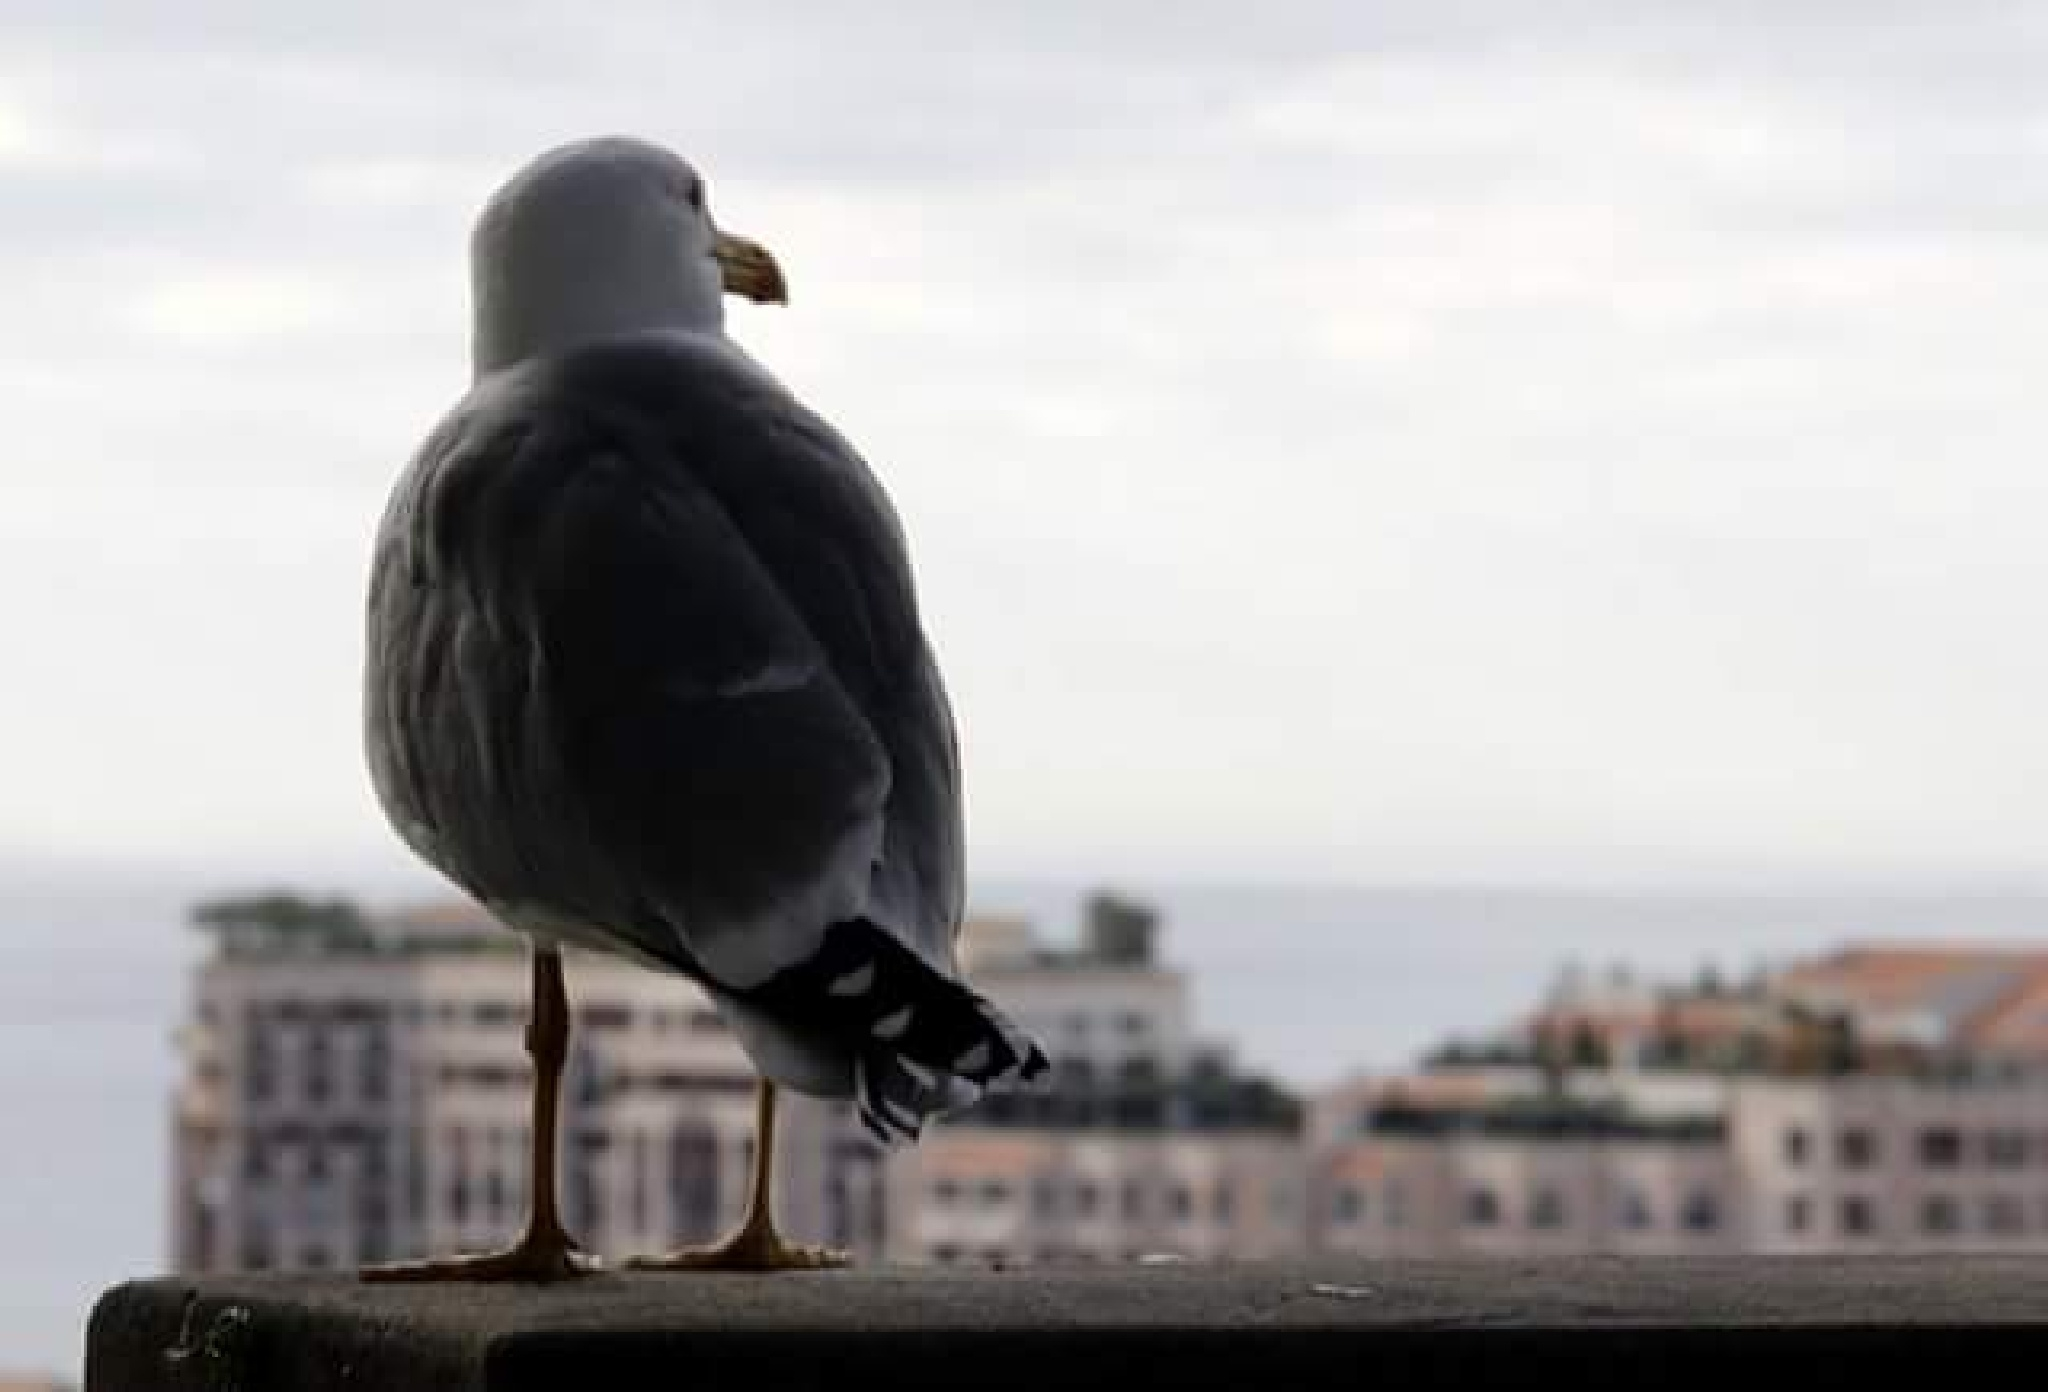 the back gull by thierrylorenzo